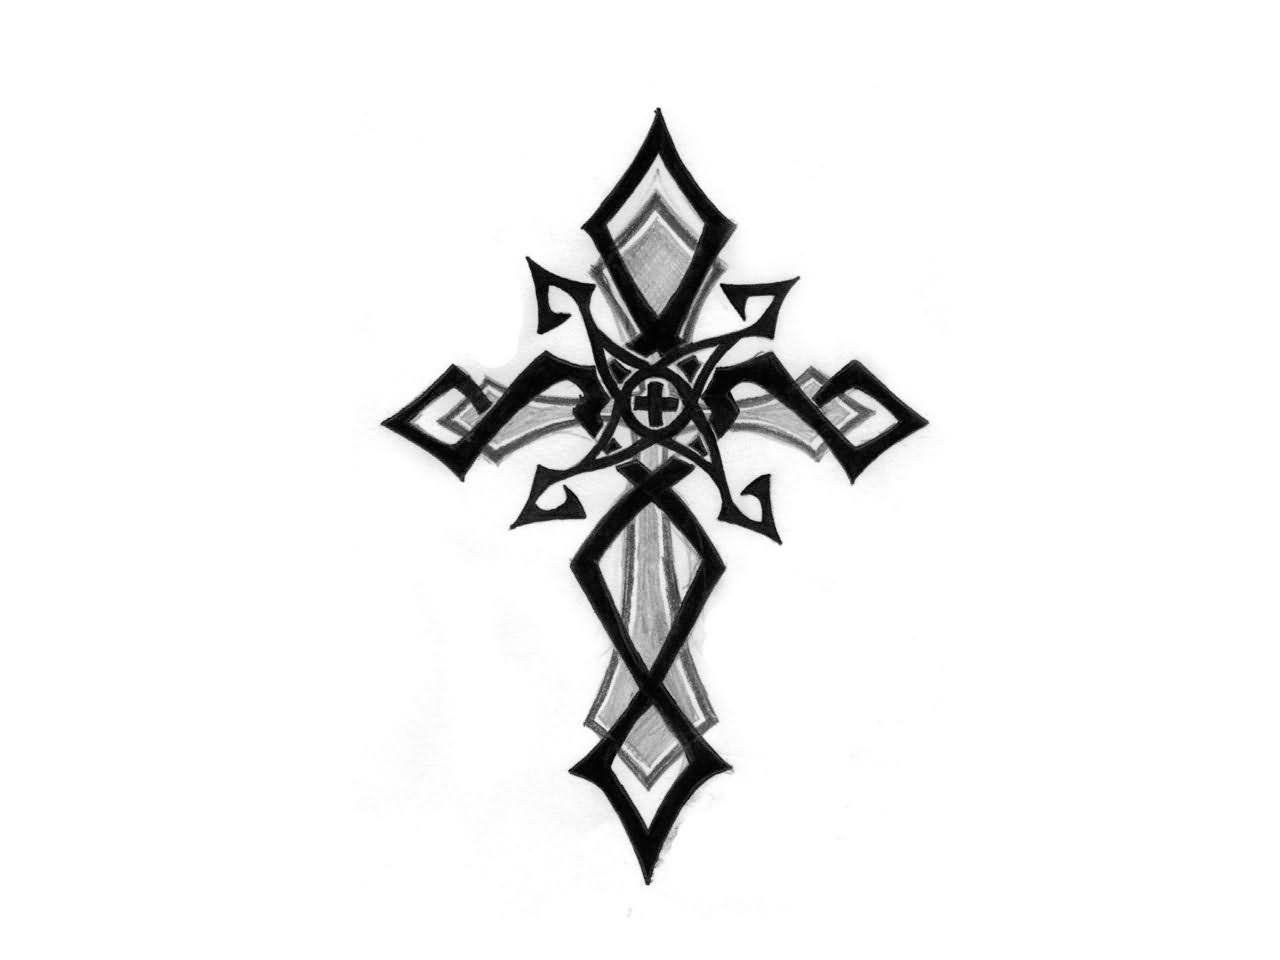 Cross Tattoo Images & Designs